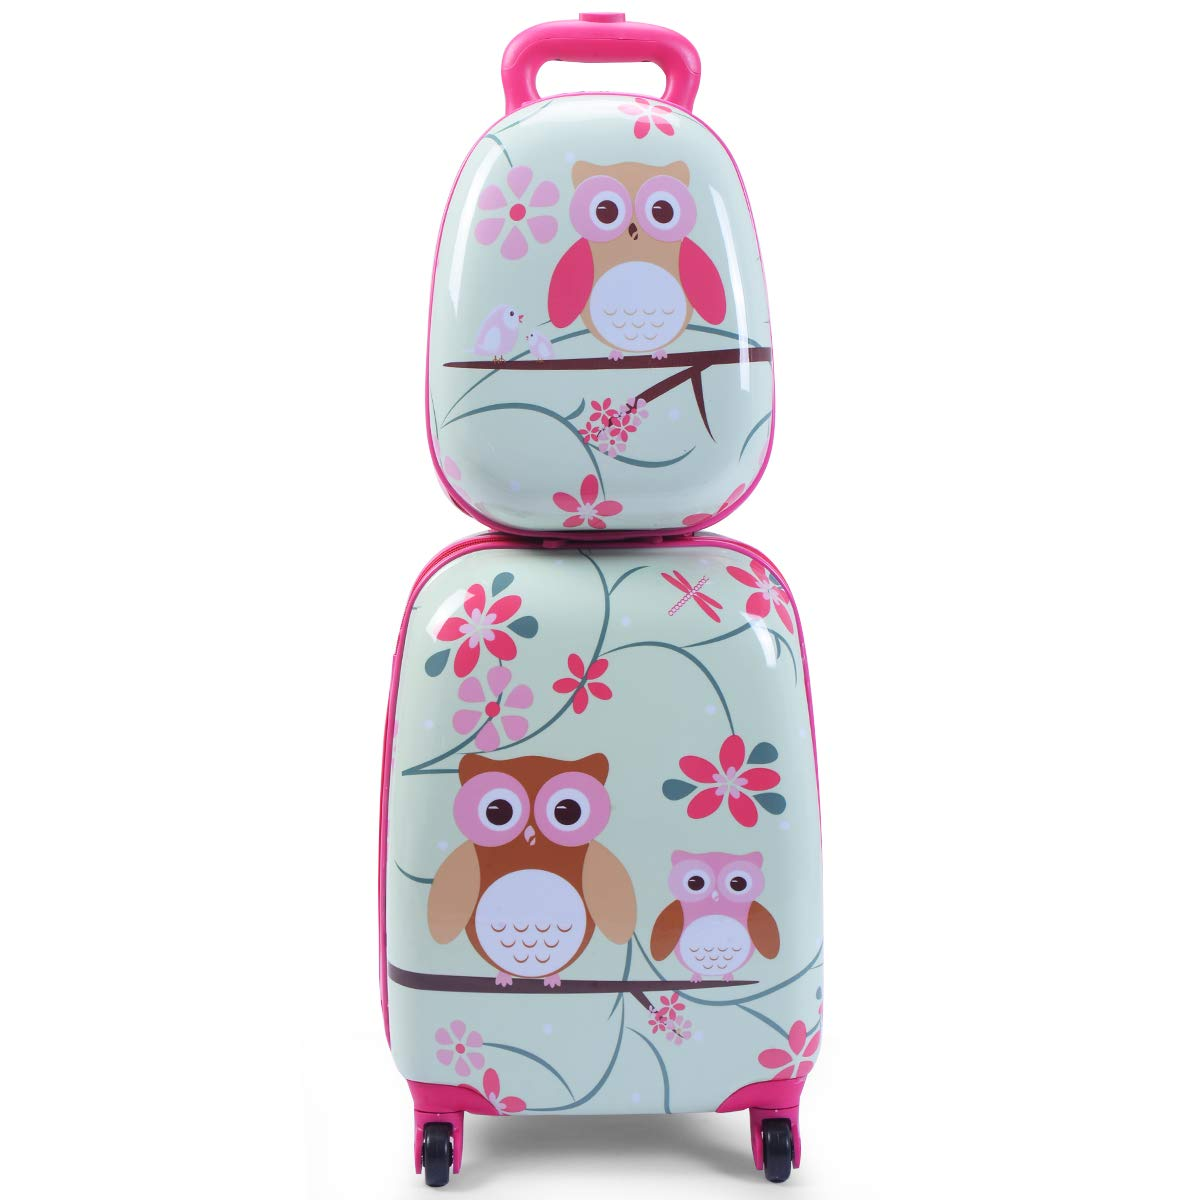 Goplus 2Pc 12'' 16'' Kids Carry On Luggage Set Upright Hard Side Hard Shell Suitcase School Travel Trolley ABS (Owls) by Goplus